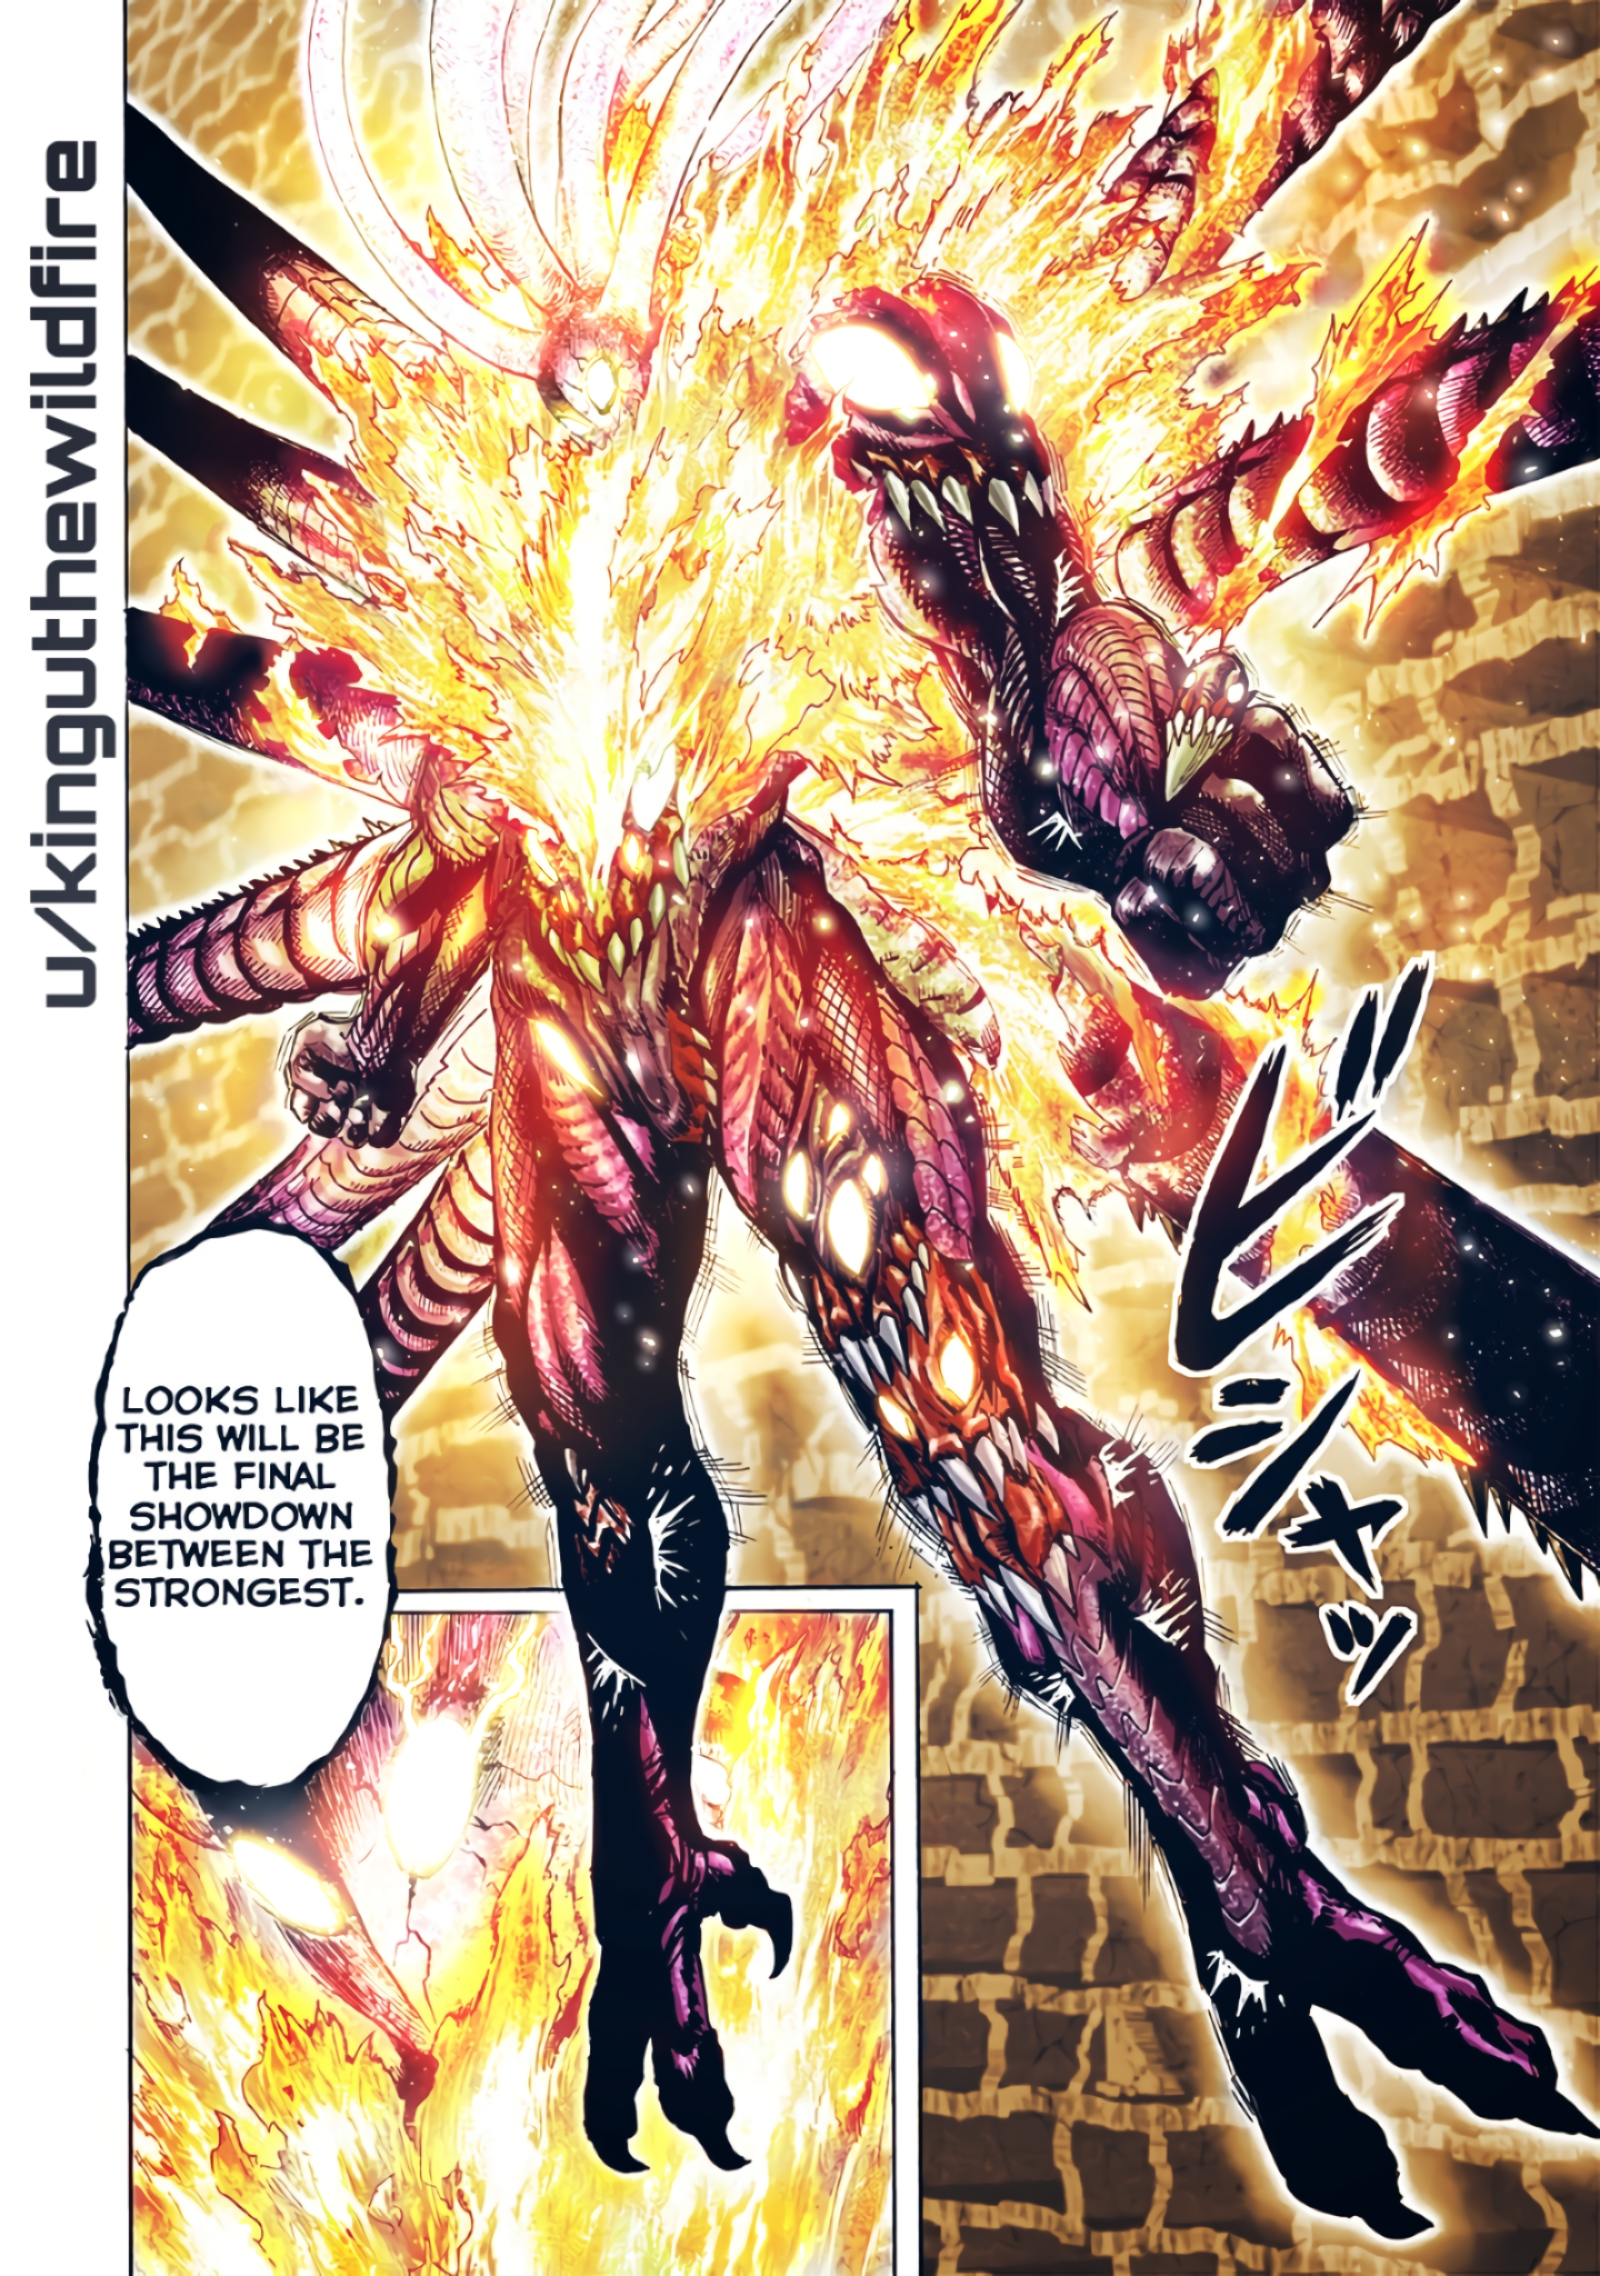 [Manga Spoilers] I coloured that EPIC Orochi panel